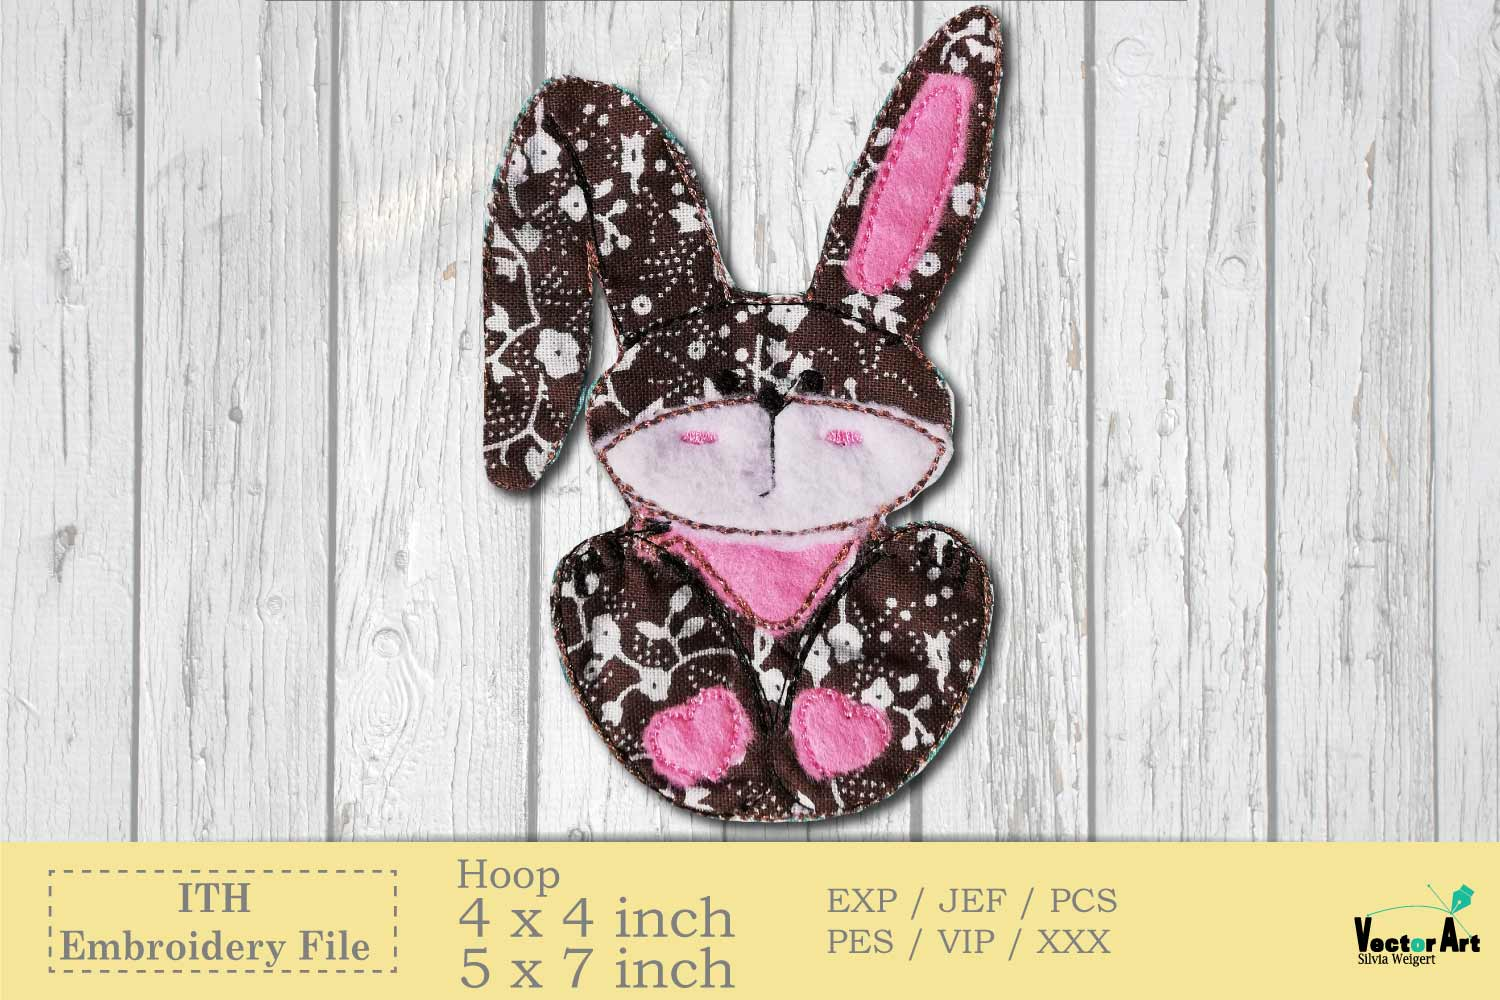 ITH Easter Bundle - Machine Embroidery Files - 10 Projects example image 4